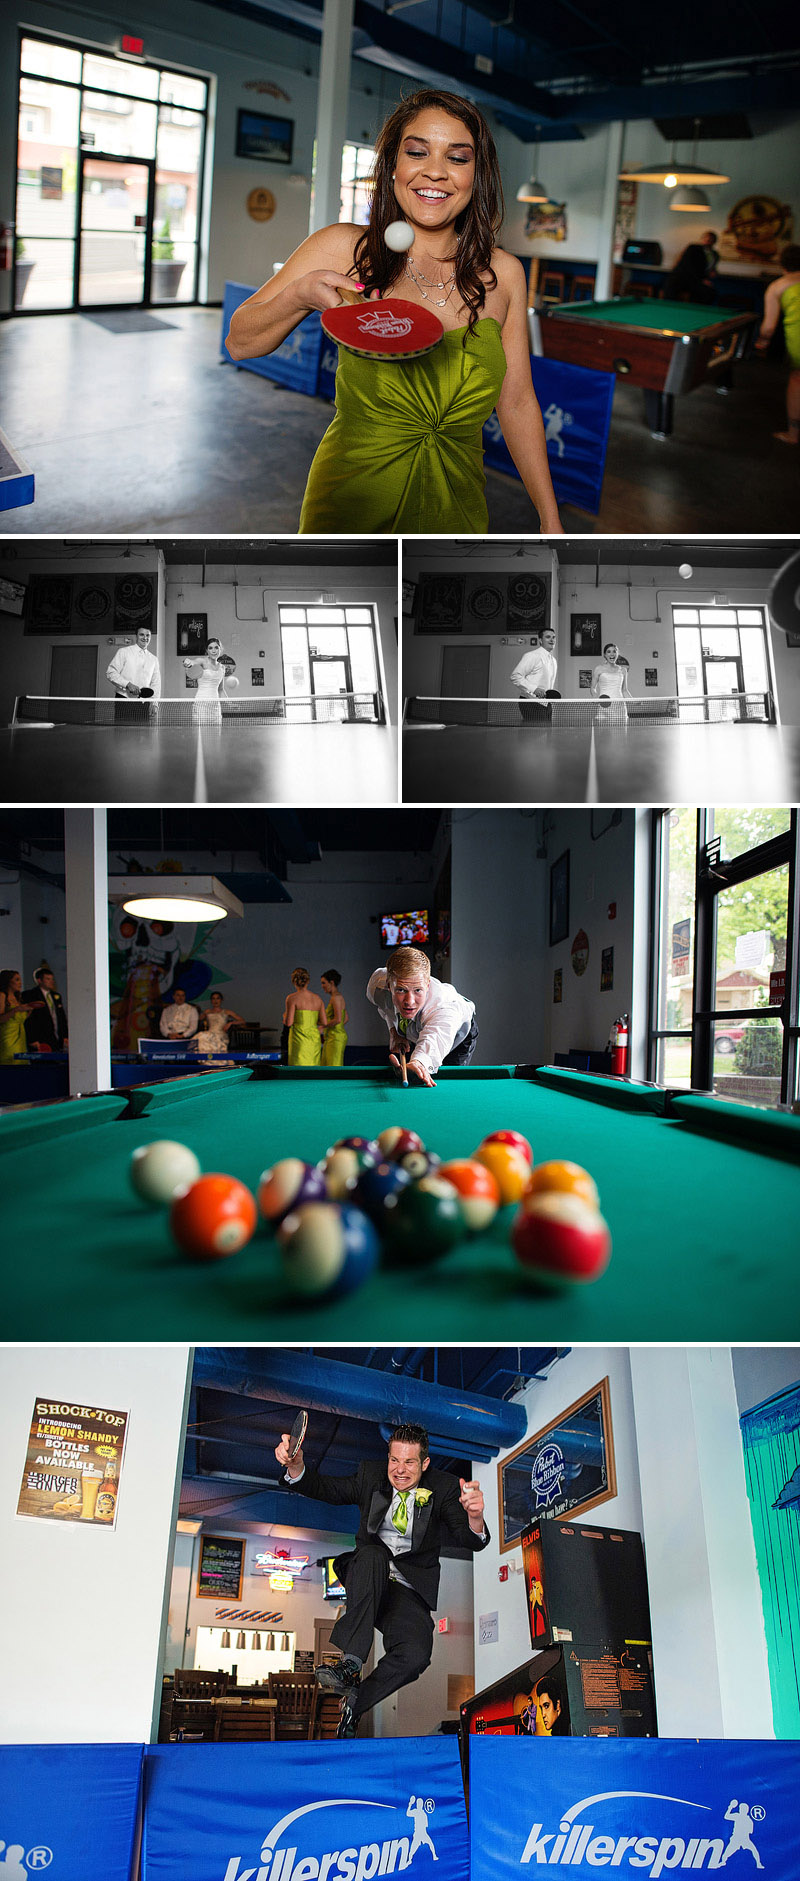 Ping pong and pool on a wedding day.